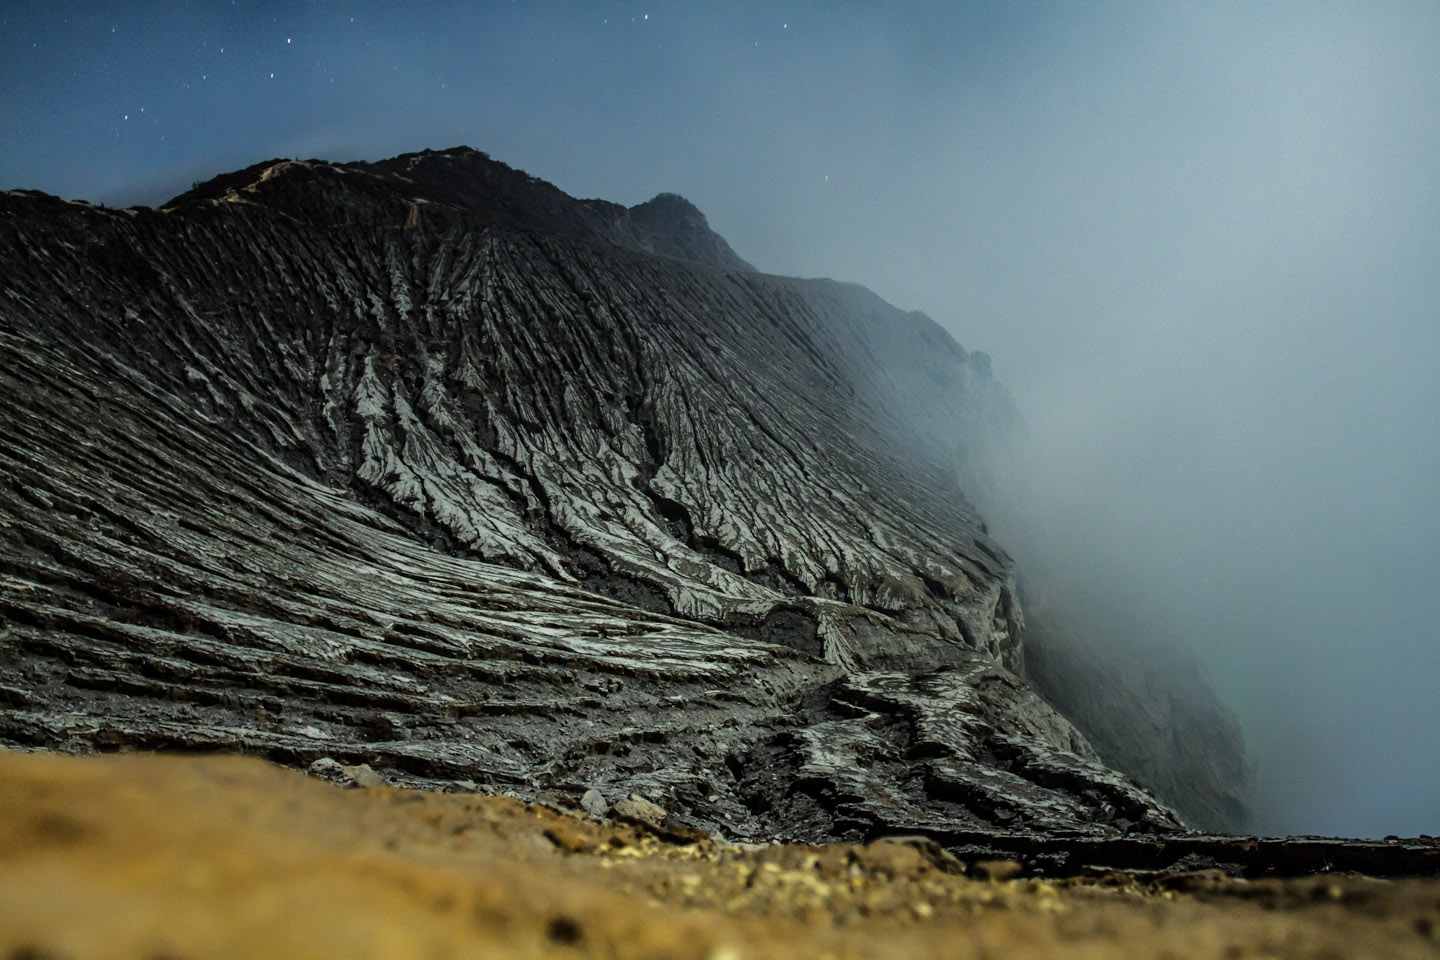 Night walk to the Ijen crater java indonesia / Aufstieg nachts Krater Vulkan Indonesien